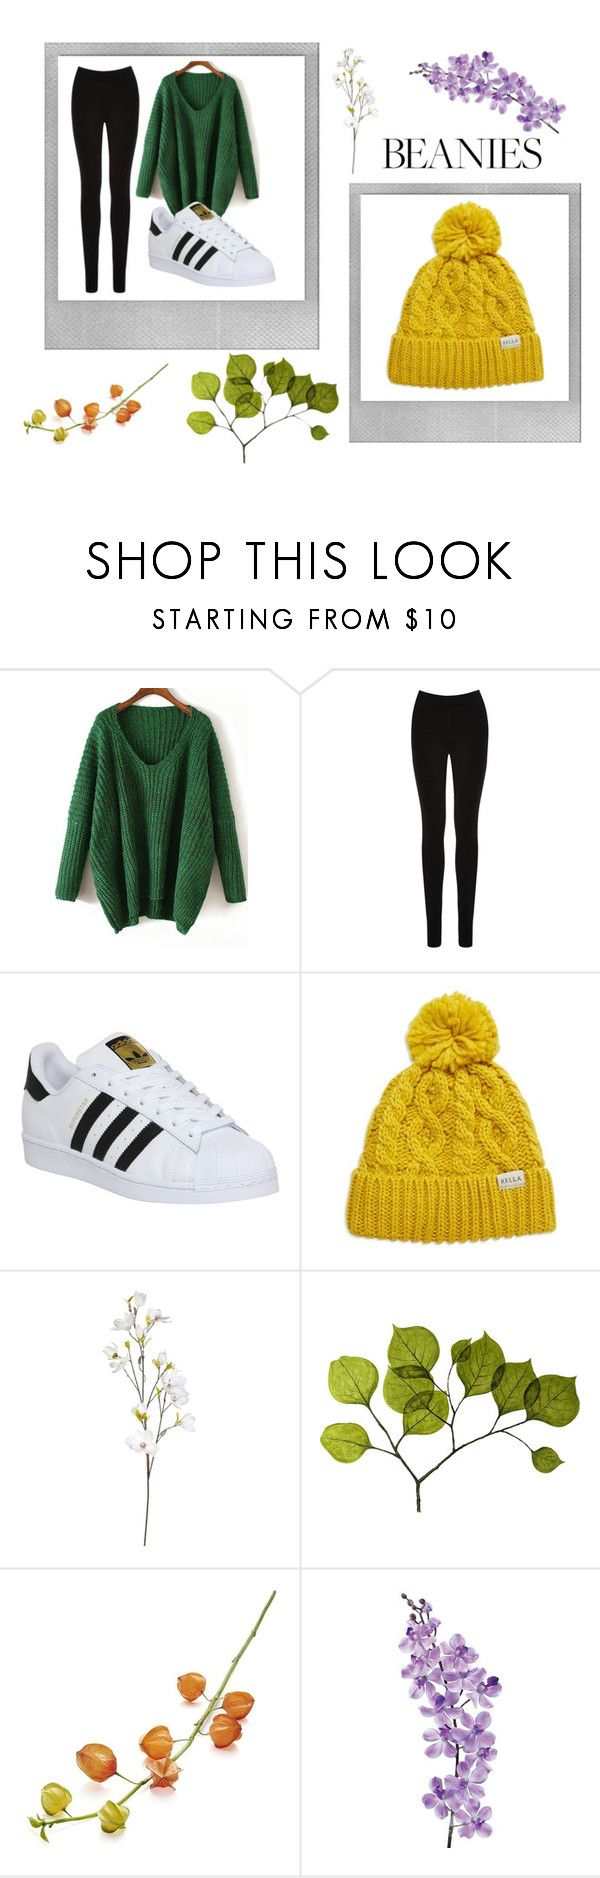 """""""beanies"""" by onlycoffenosugar ❤ liked on Polyvore featuring Polaroid, Oasis, adidas, Rella, OKA, Dot & Bo, Crate and Barrel and Laura Cole"""